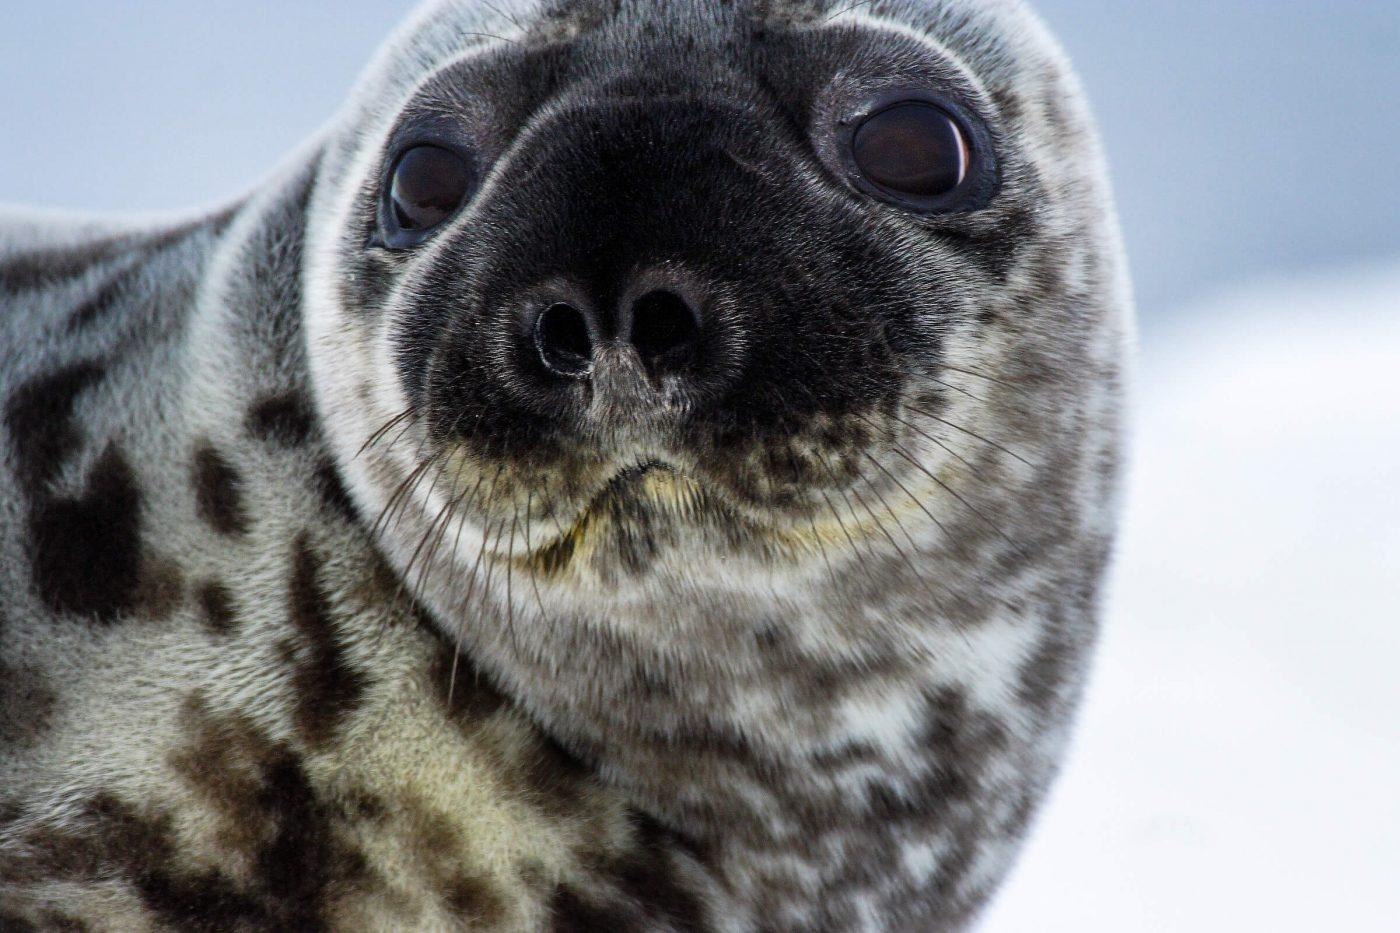 A close-up of a young hooded seal in Greenland. Photo by Aqqa Rosing Asvid